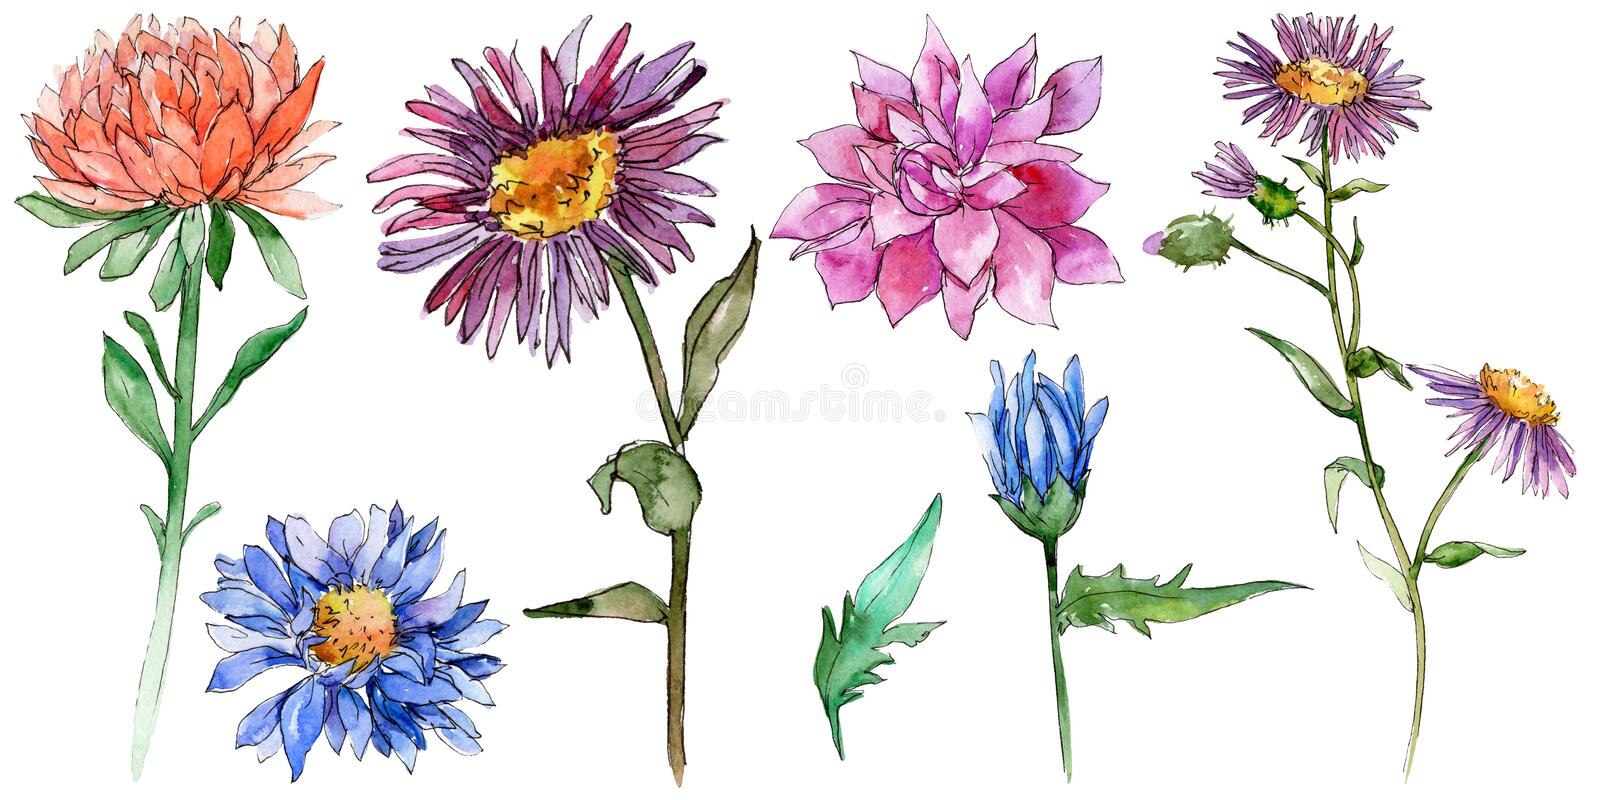 Wildflower chrysantemum flower in a watercolor style isolated. vector illustration